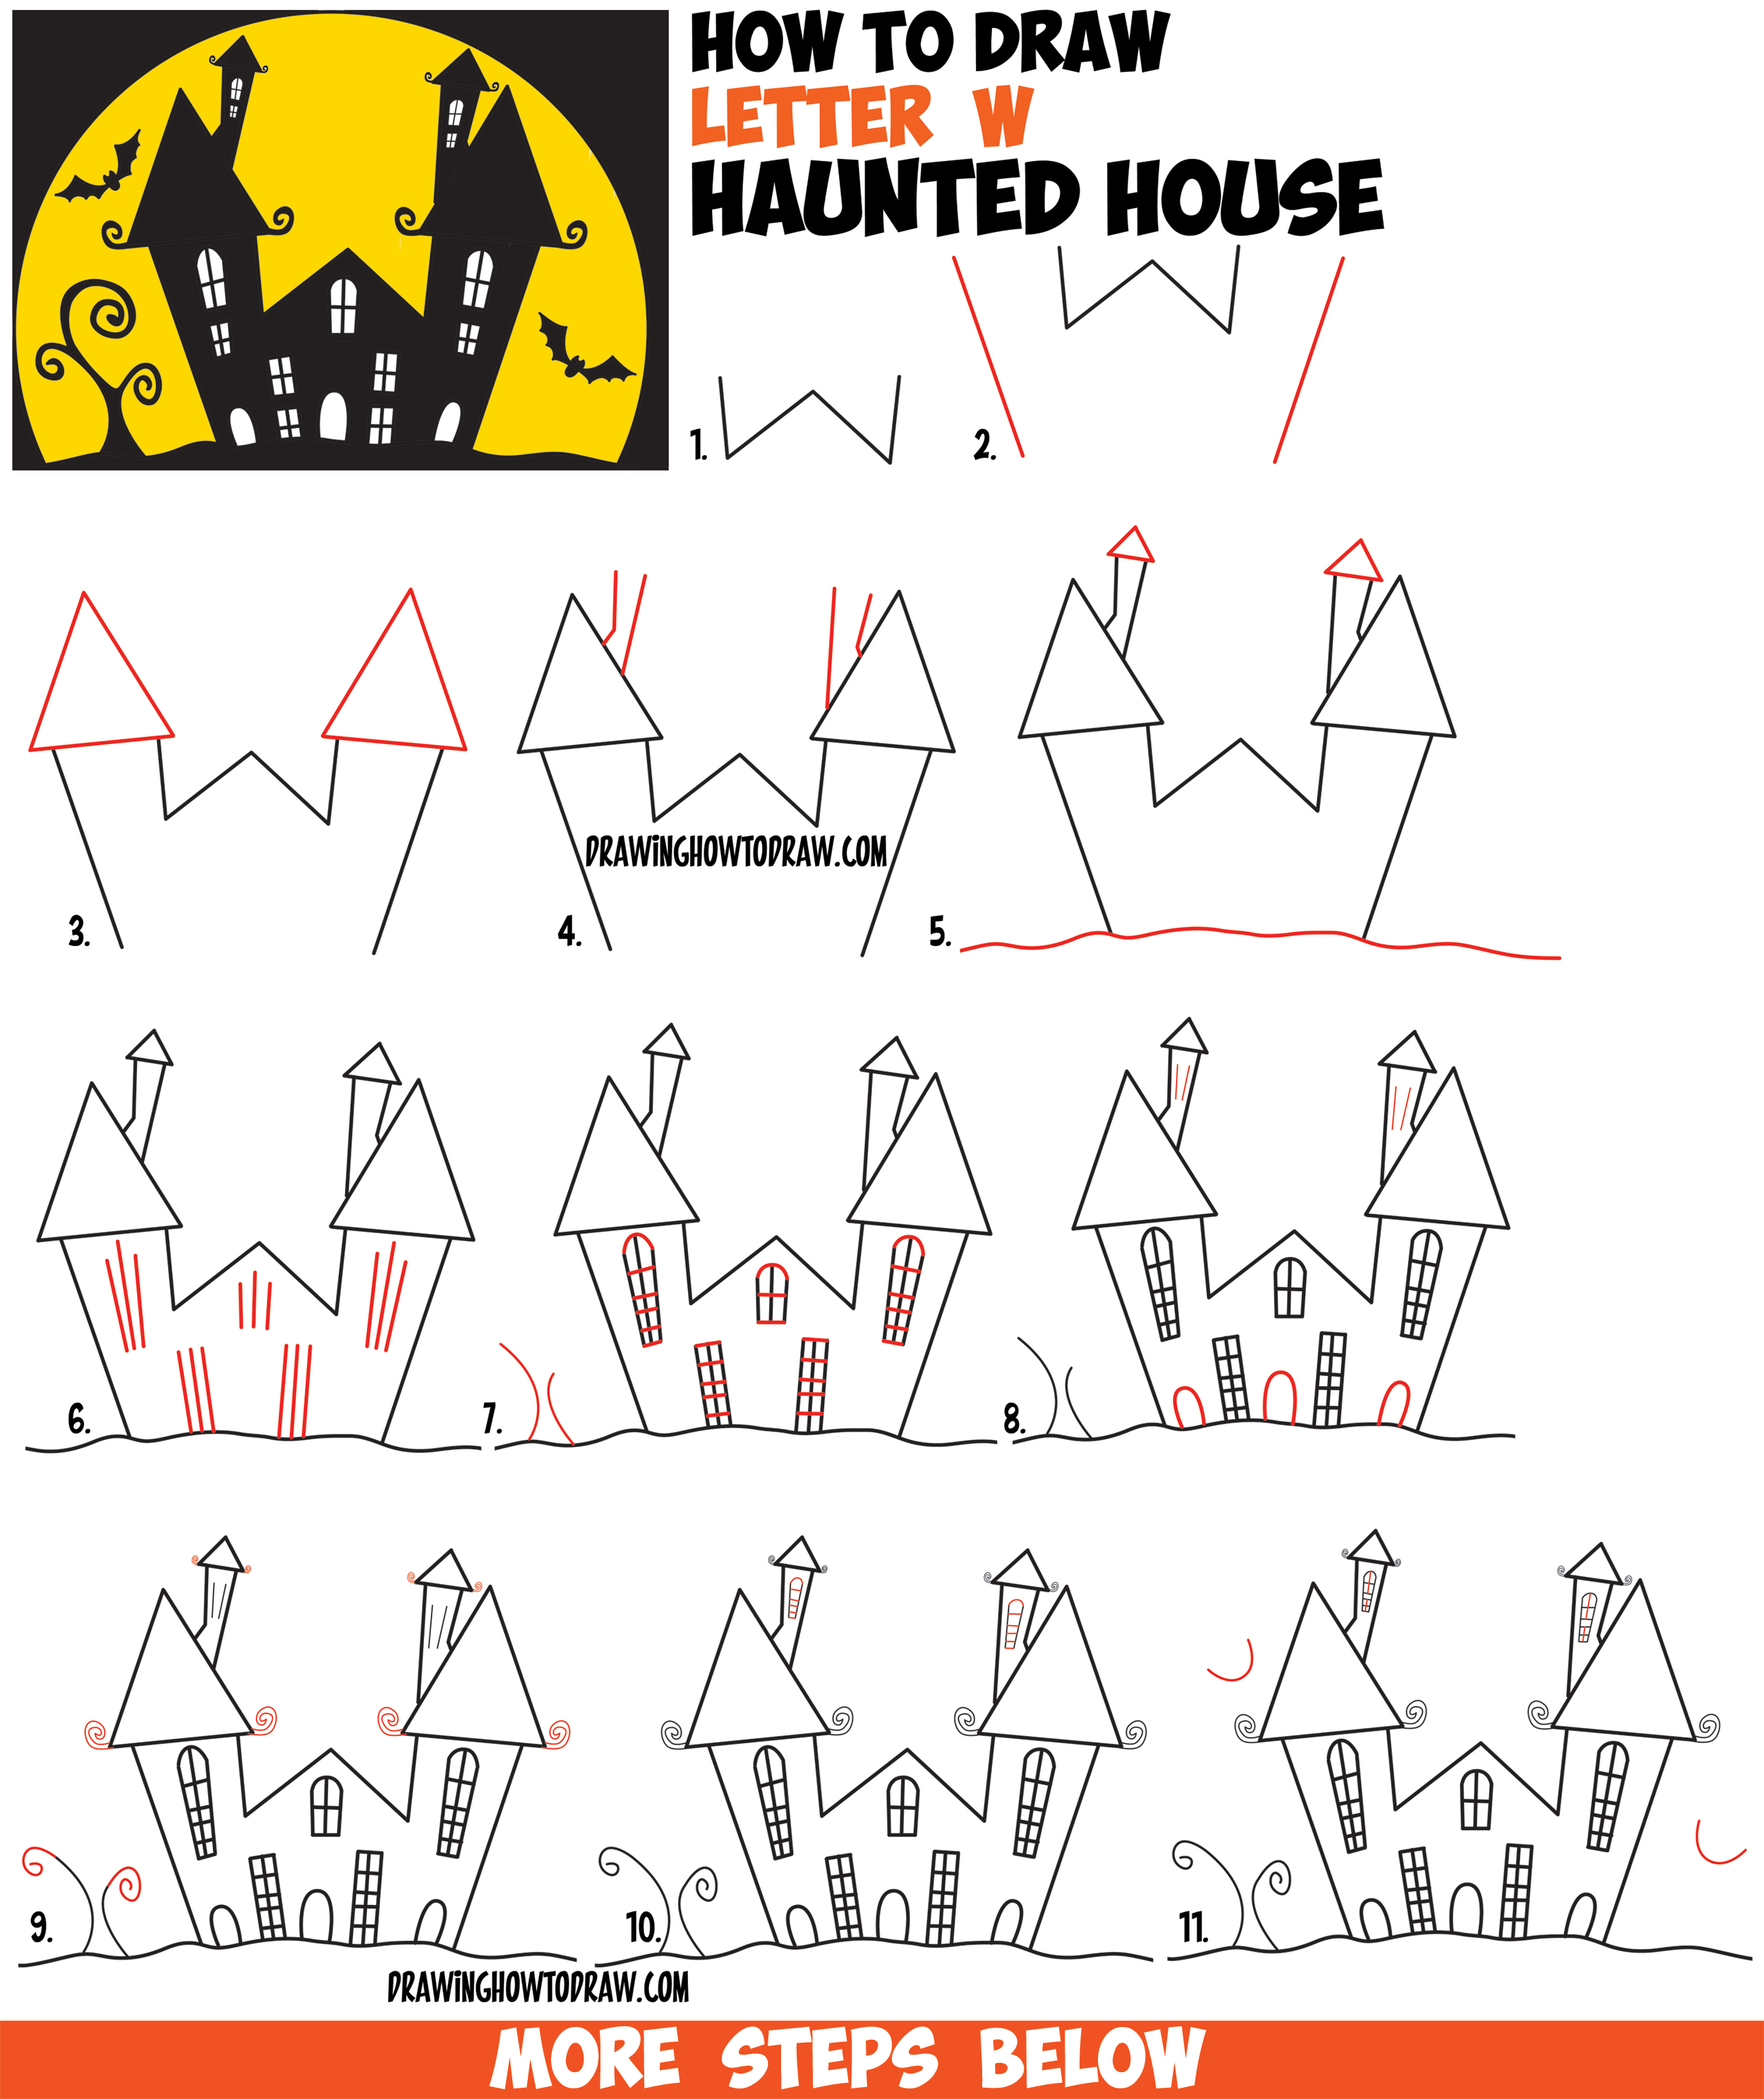 Drawn haunted house line drawing simple Draw to Step Haunted Cartoon